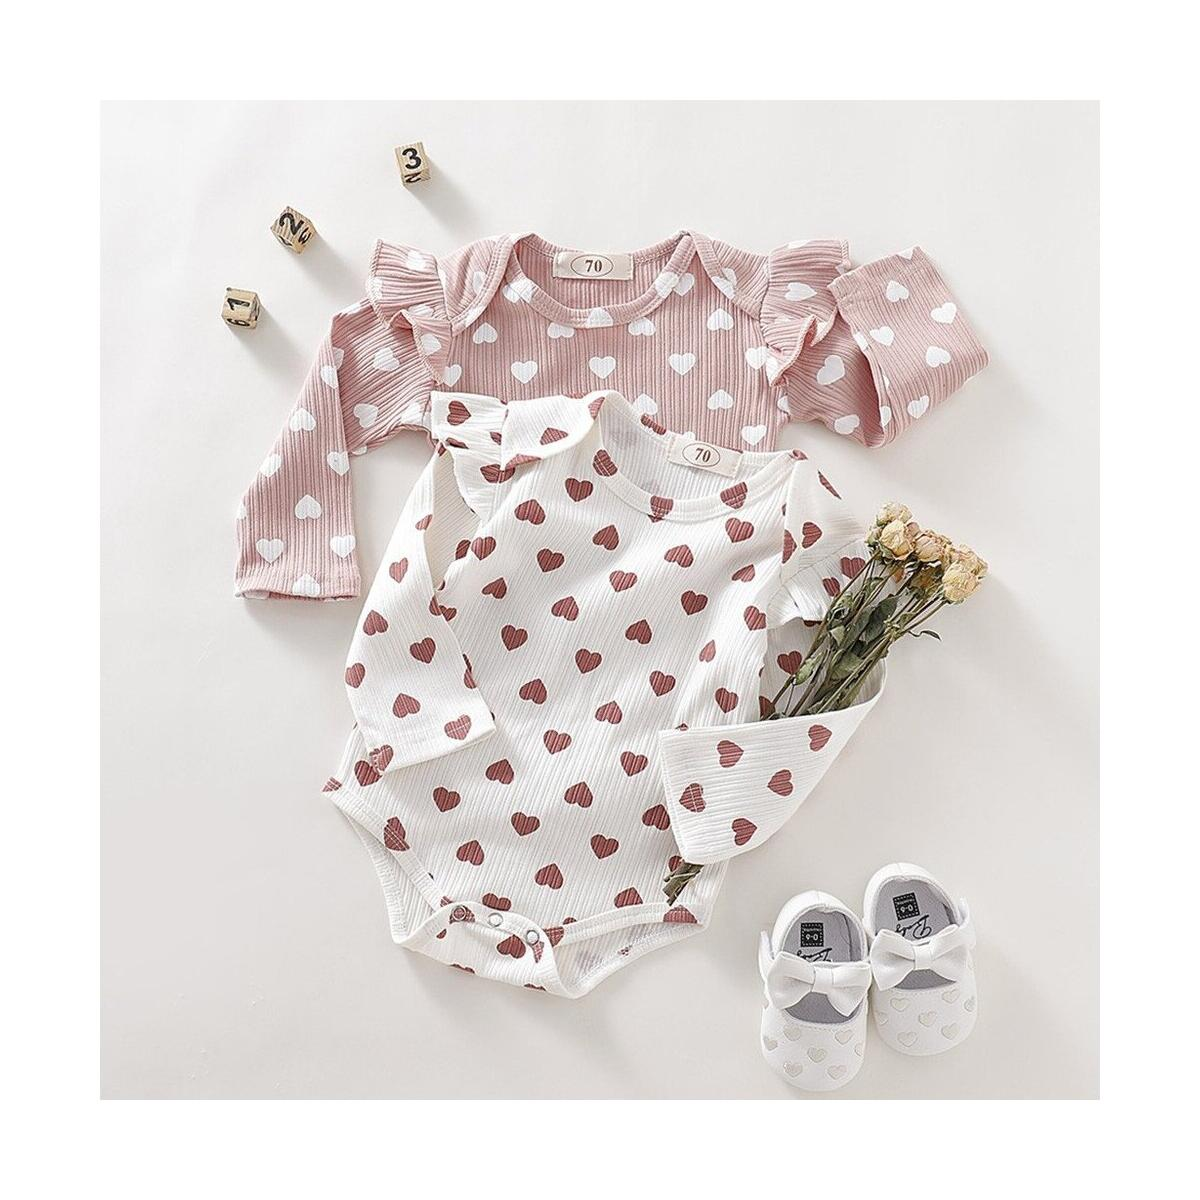 Newborn Baby Girls Clothes Ruffle Heart Print Bodysuit Jumpsuit One Piece Romper Knitted Long Sleeve Clothes Infant Clothing